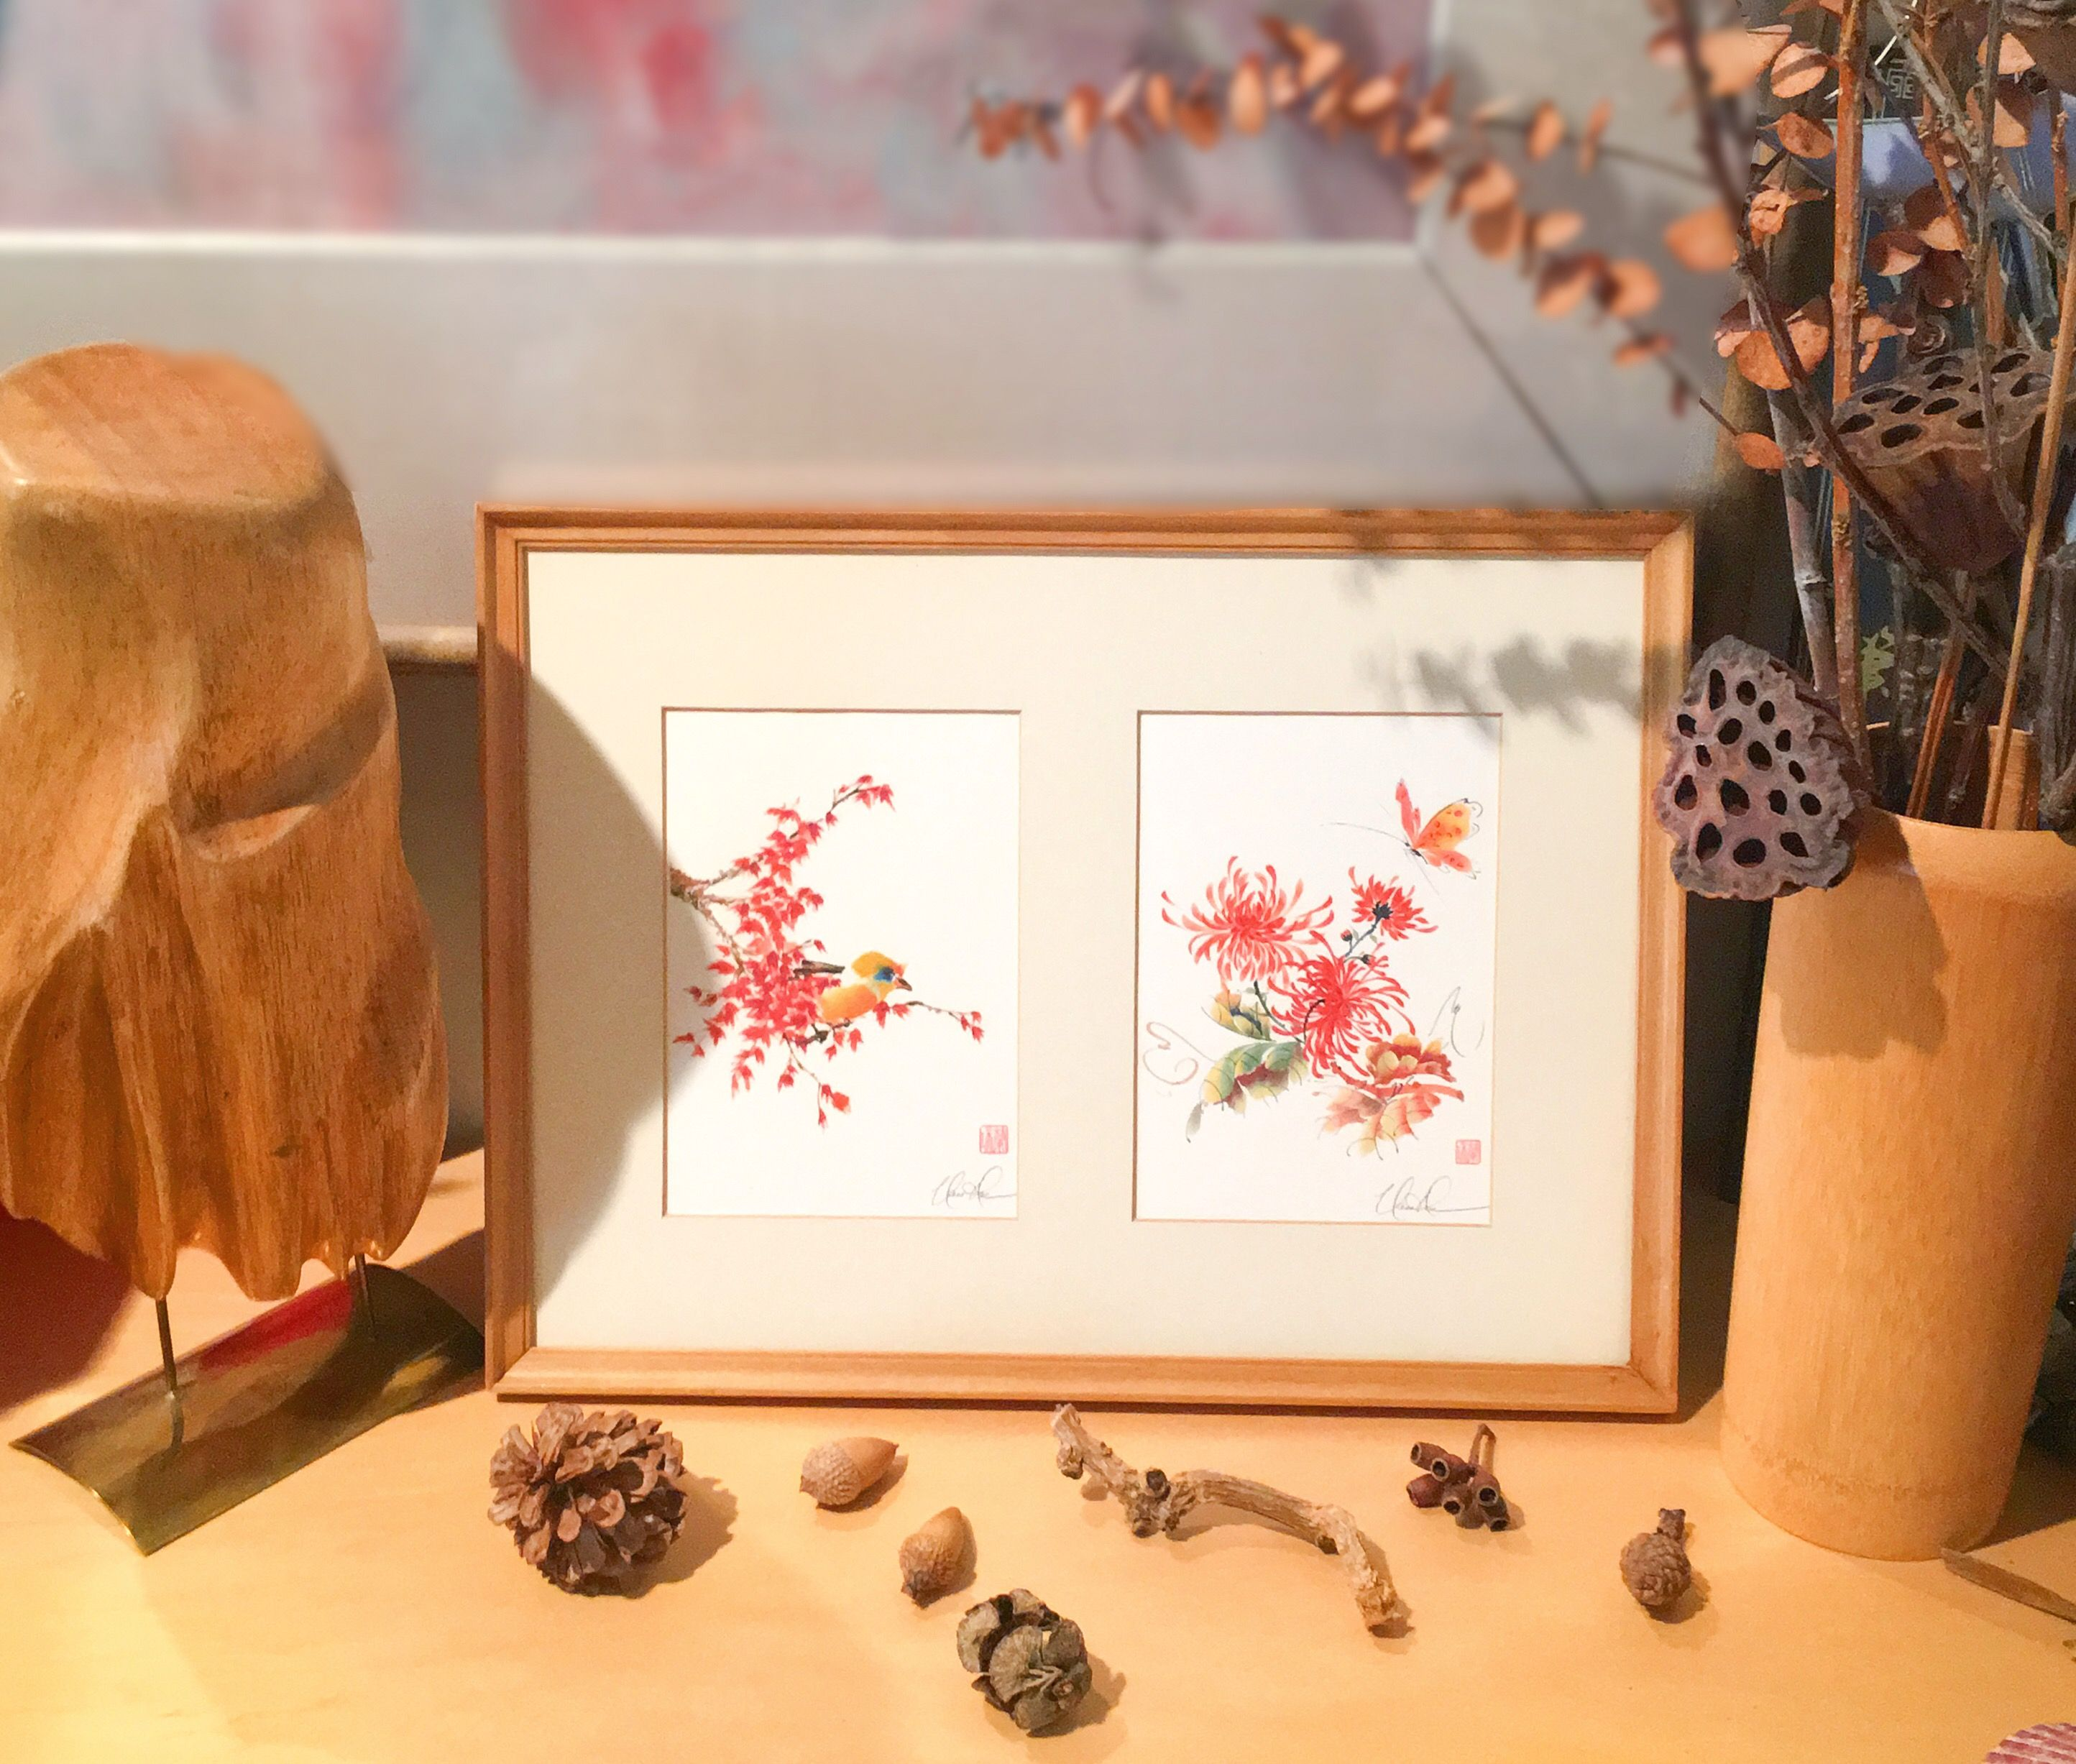 Almost Hidden And The Light Touch Framed Fine Art Greeting Cards